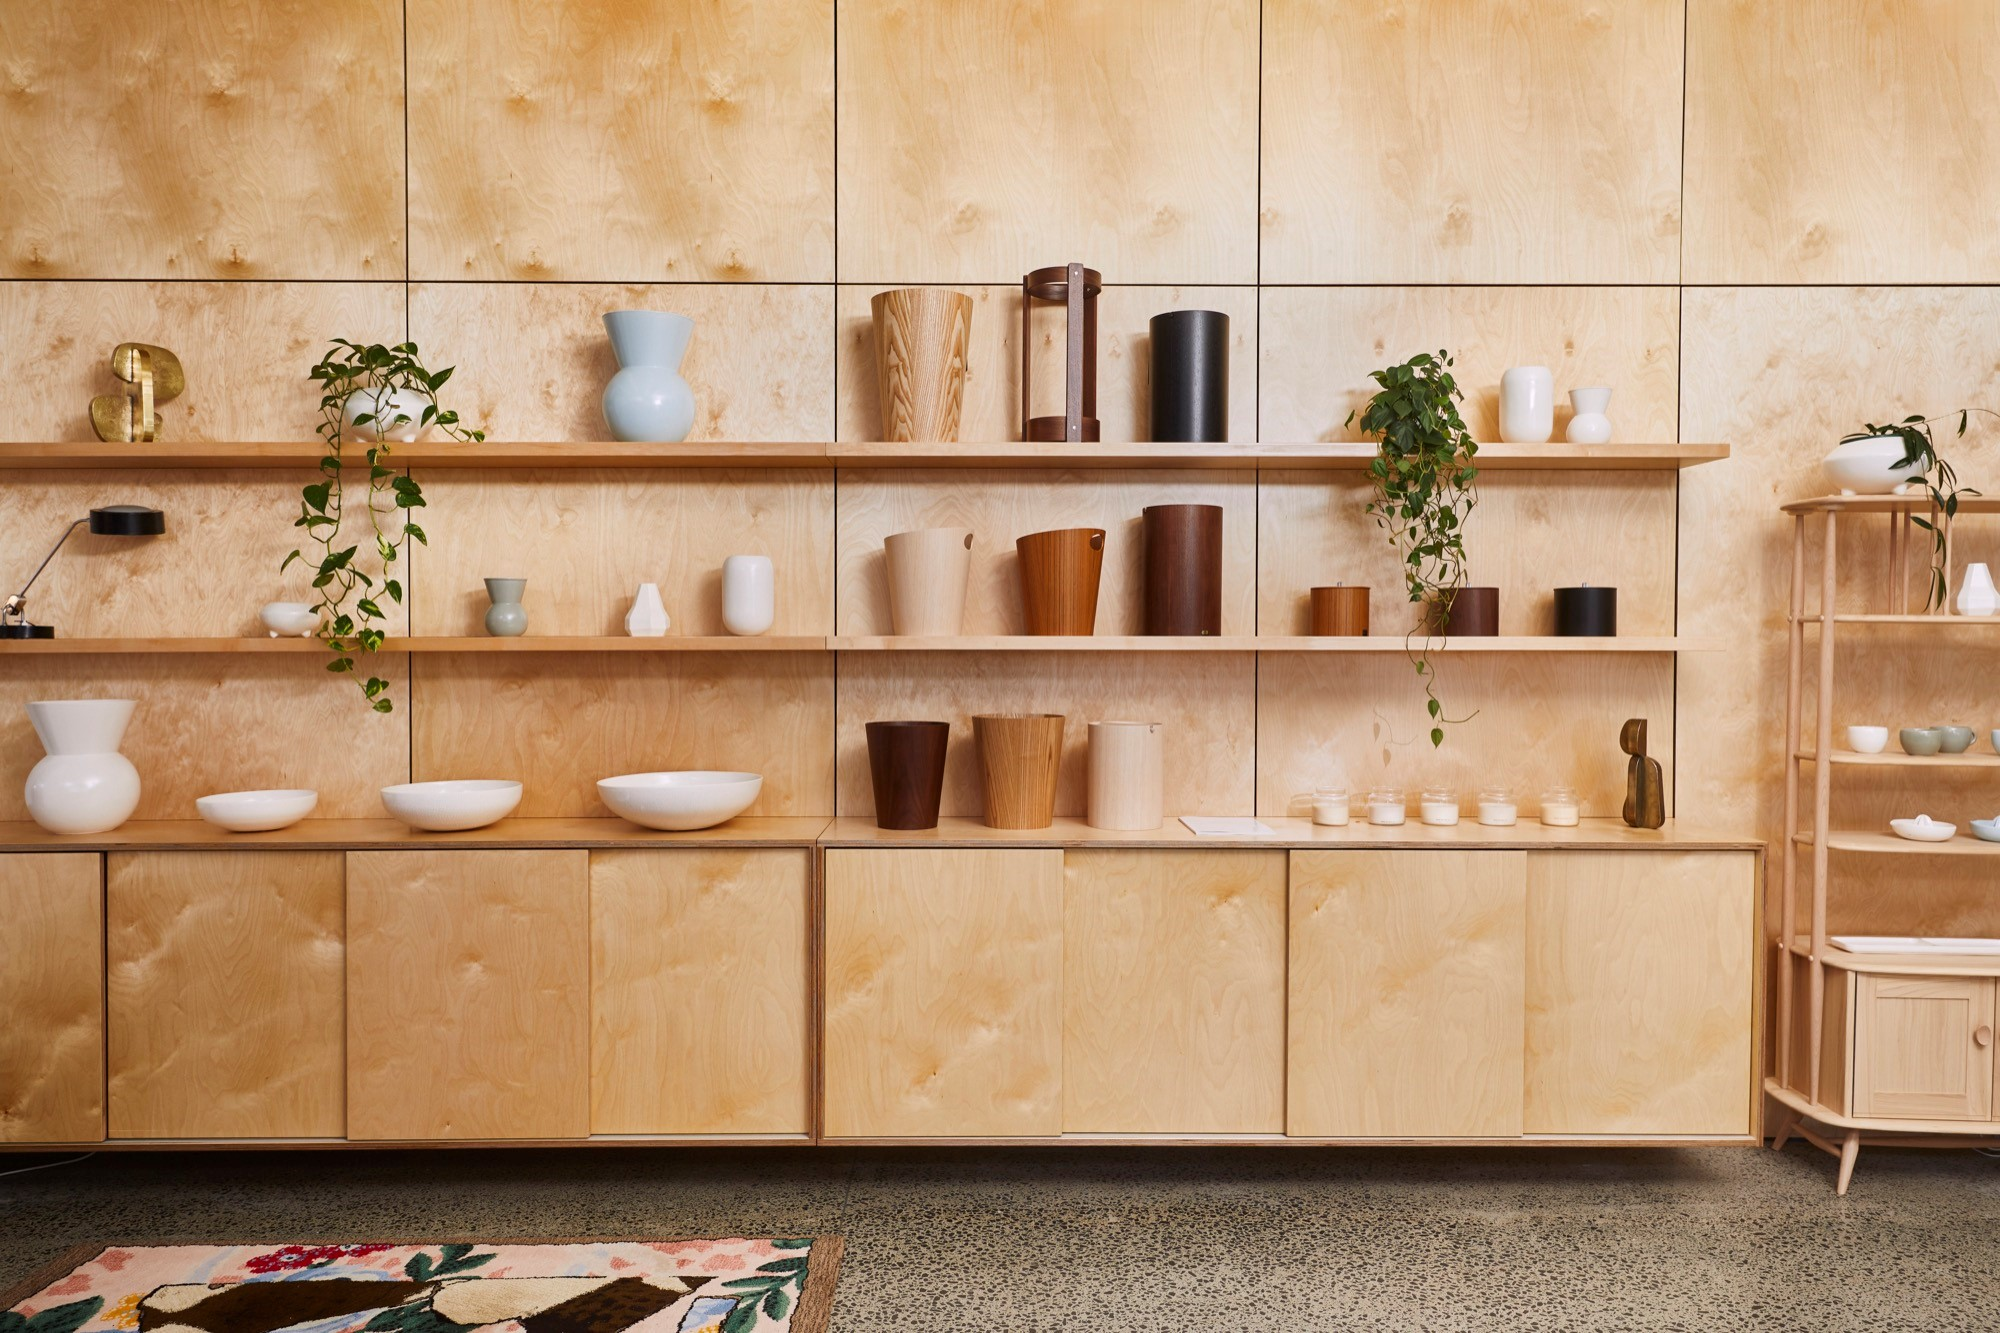 Ceramics and sculptures from Gidon Bing are displayed next to iconic plywood homeware from Japanese company Saito. The hand tufted rug is from Christchurch maker Dilana.